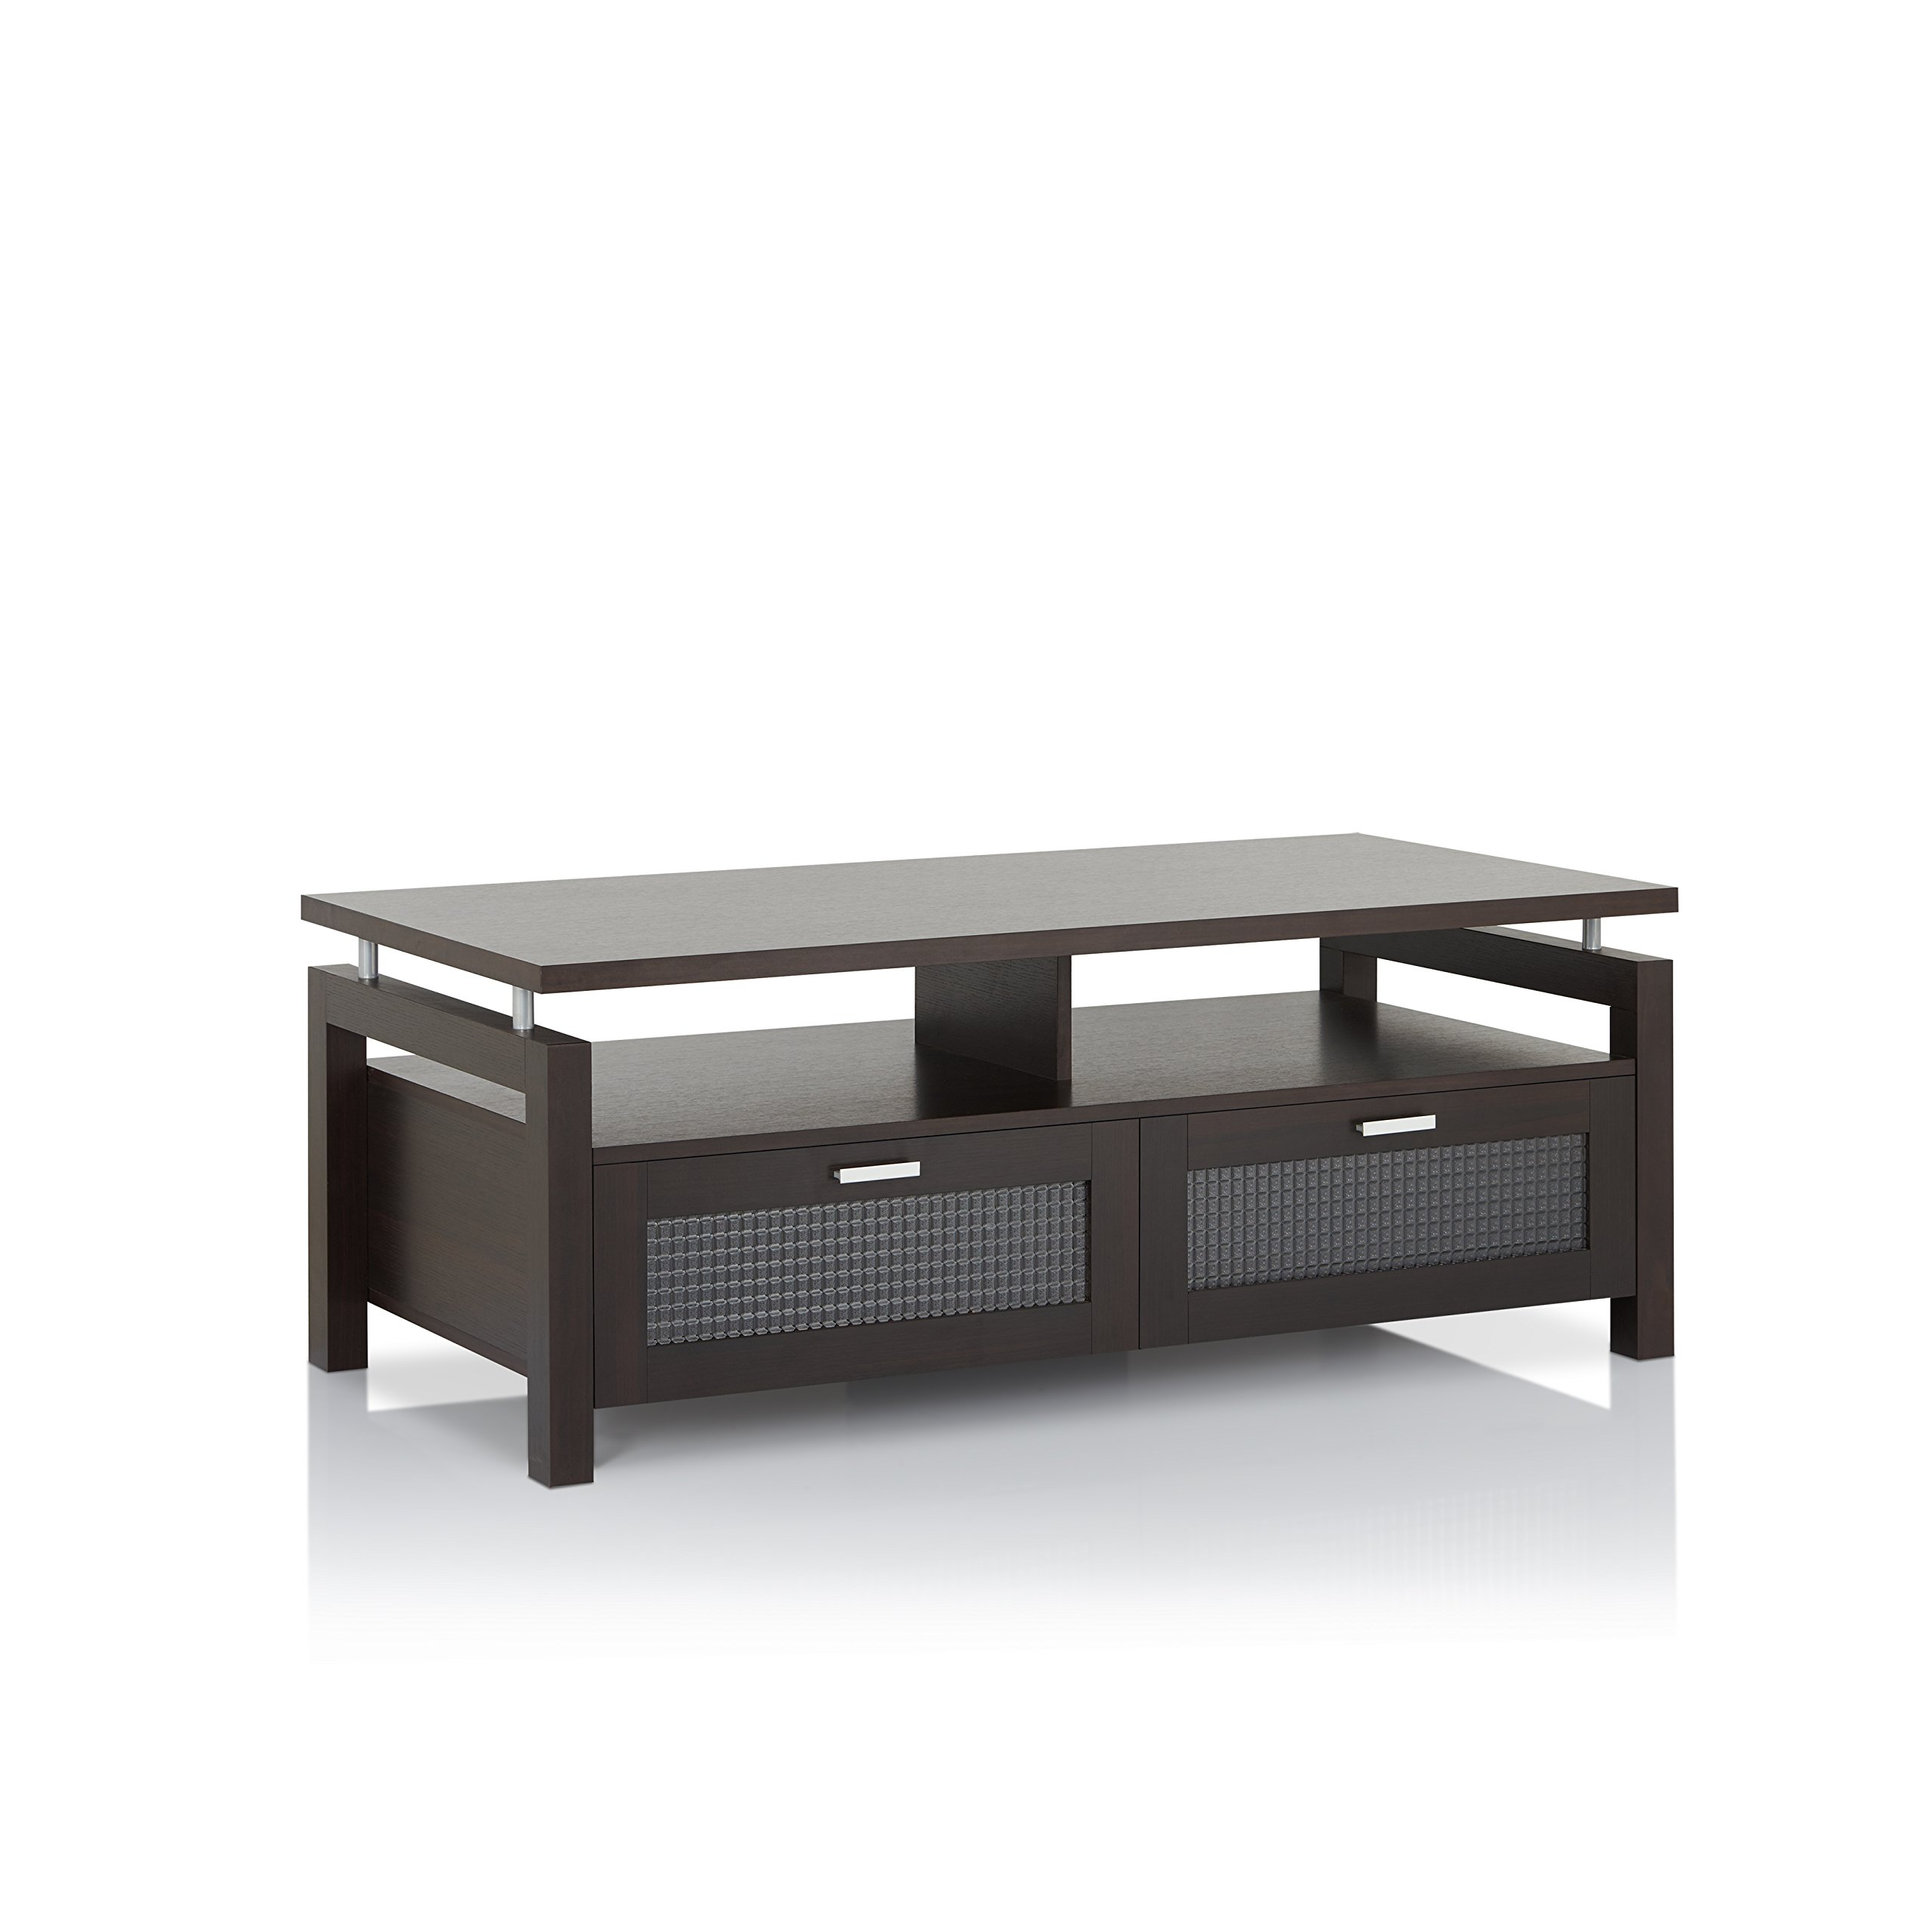 ioHOMES Griffon Modern Coffee Table, Espresso by HOMES: Inside + Out